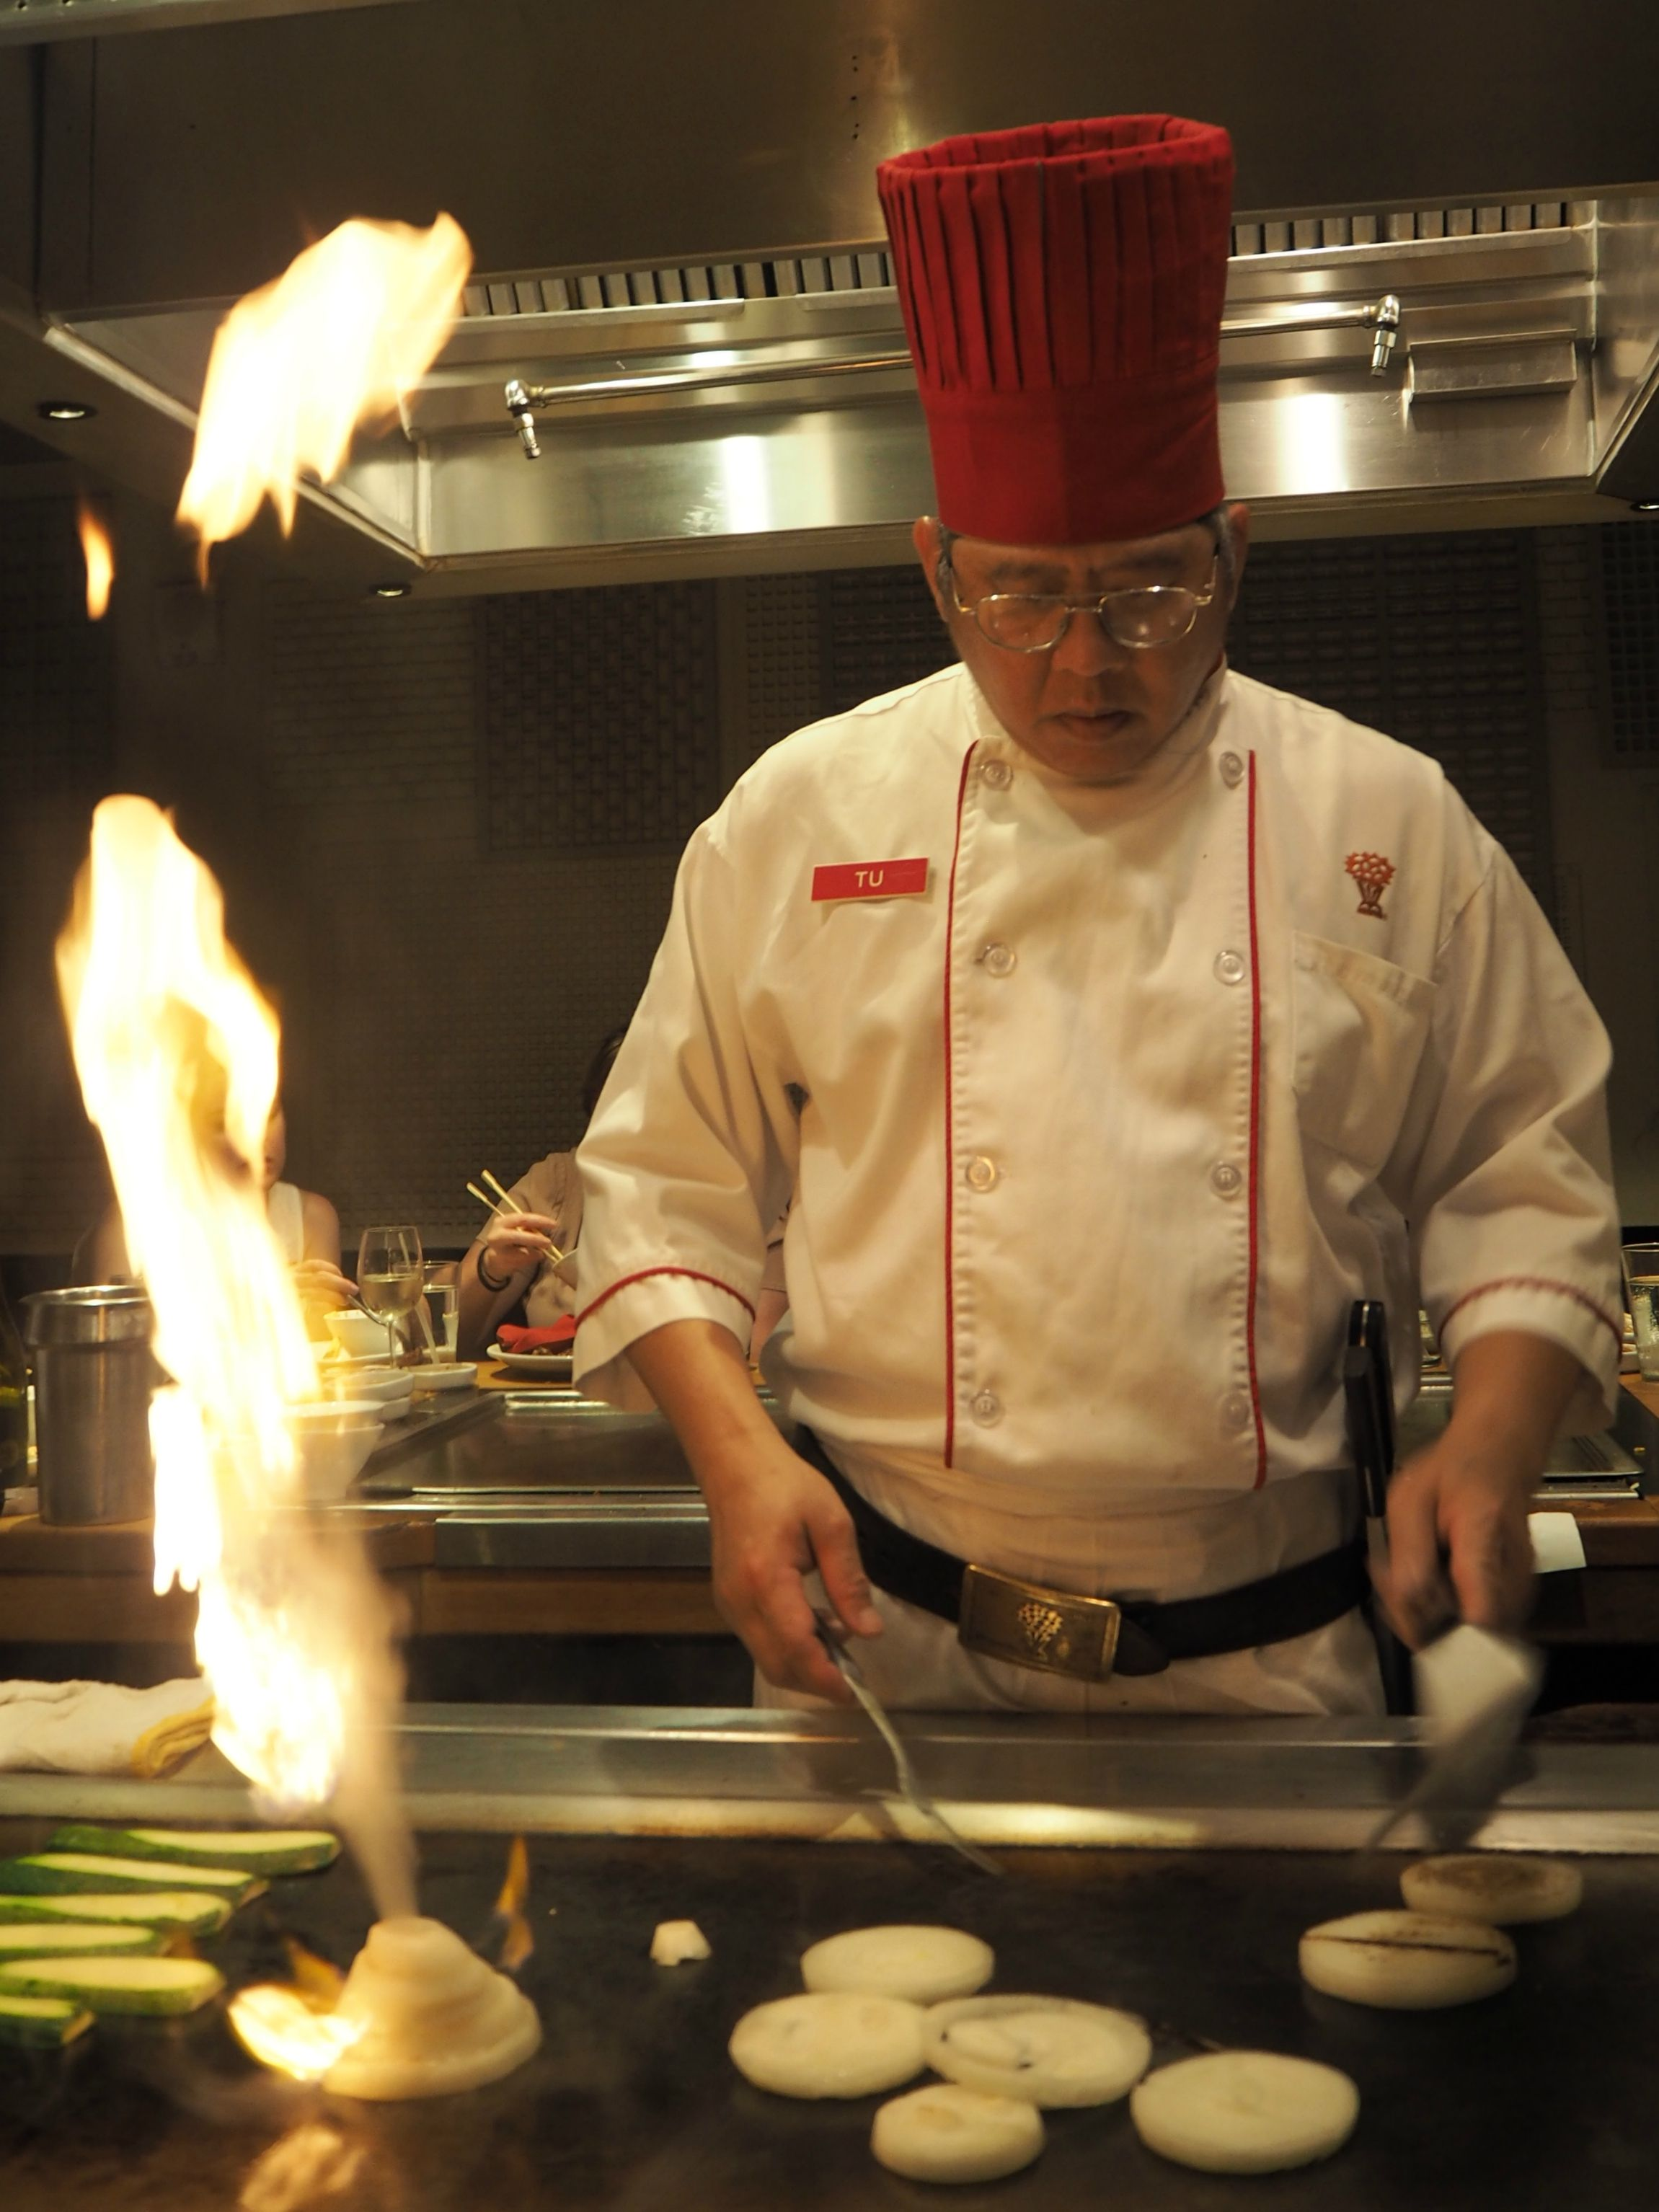 Chef Tu grilling onions at Benihana